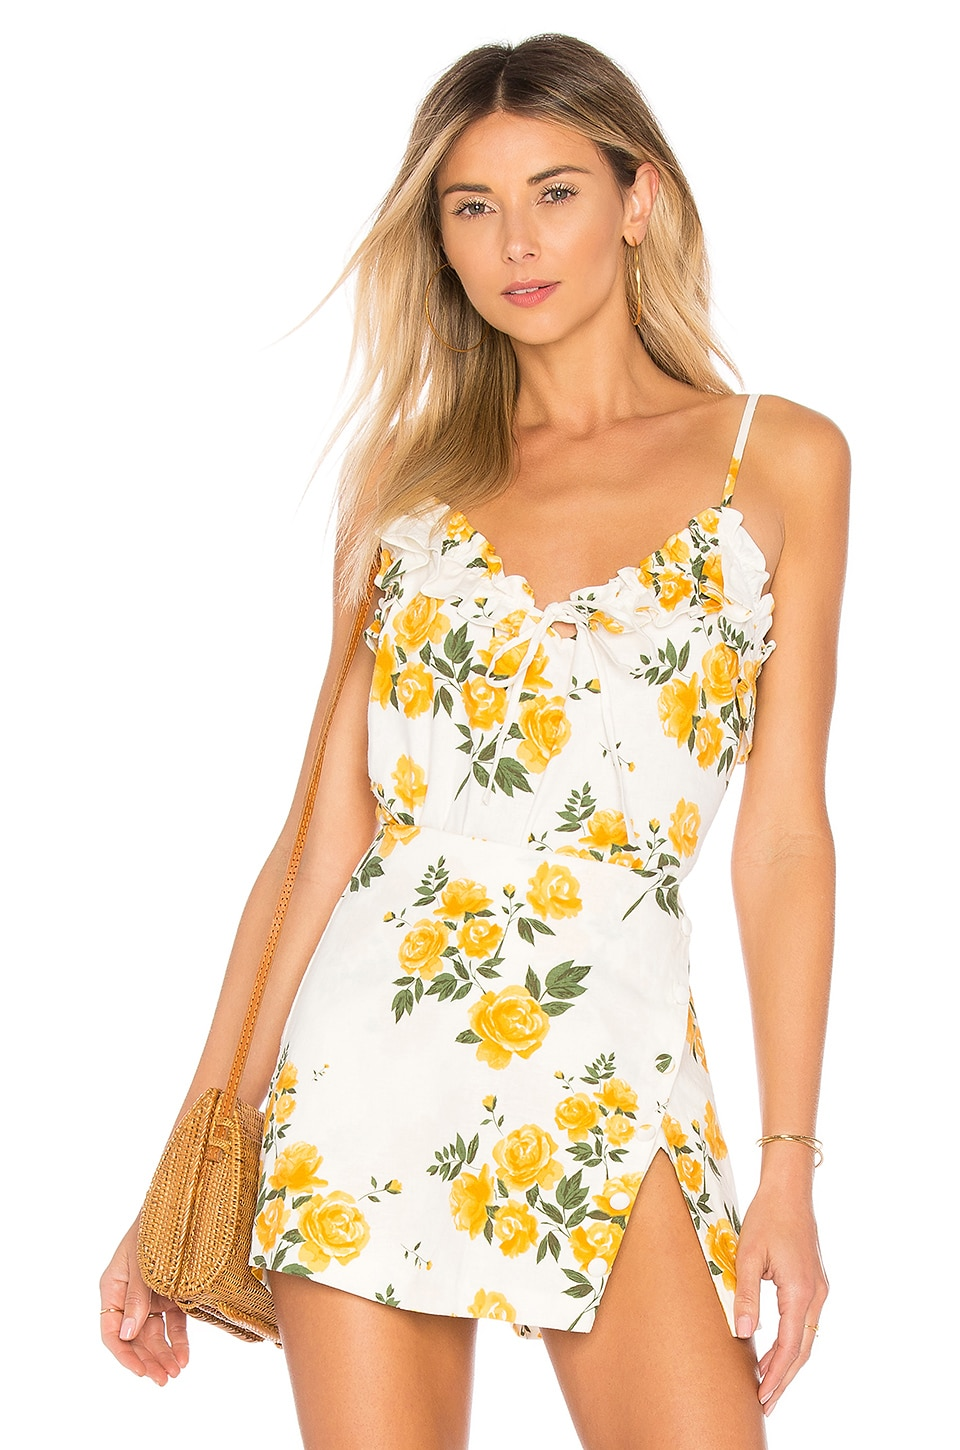 L'Academie The Flora Top in Yellow Rose